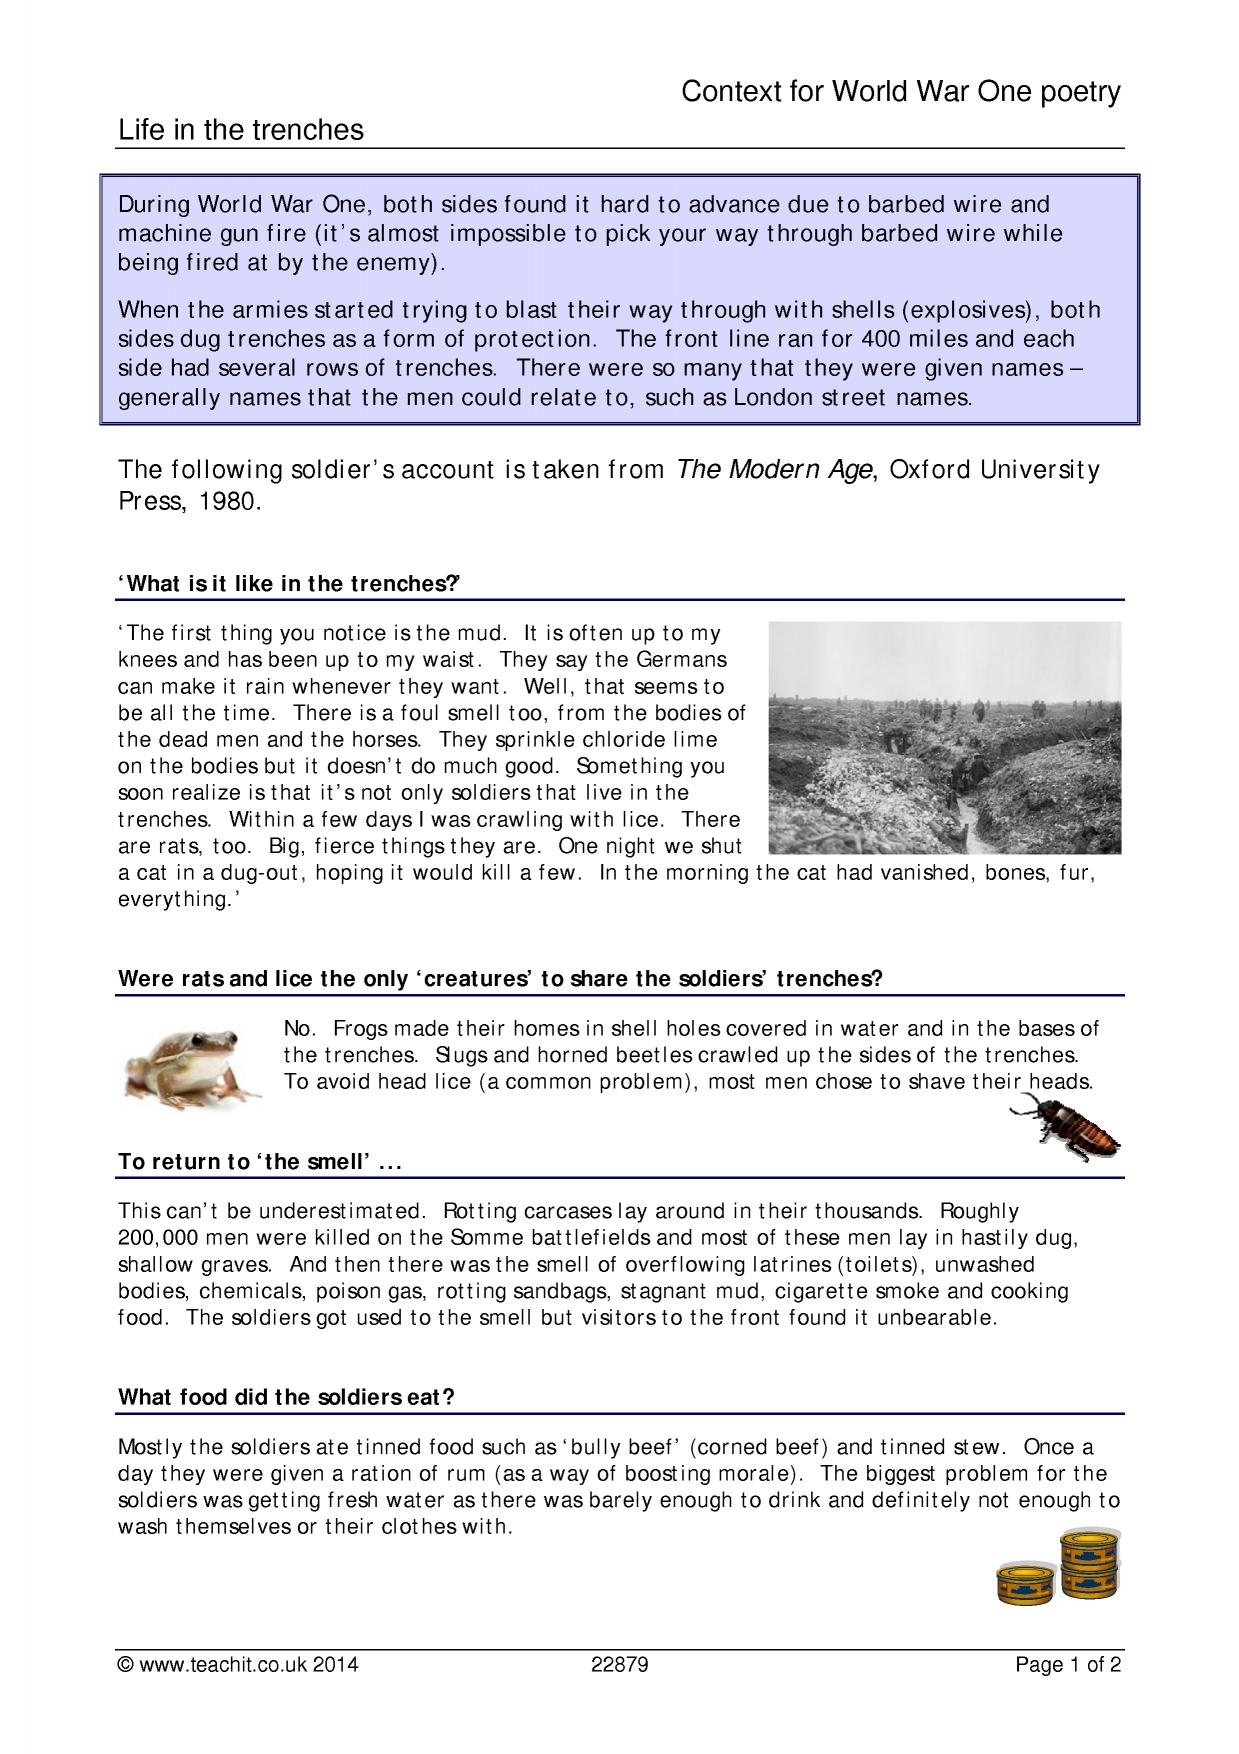 analysis of the poem on the life of man by dir walter raleigh English literature 12: chapter 3 study play  who wrote the poem, on the life of man  and sir walter raleigh .